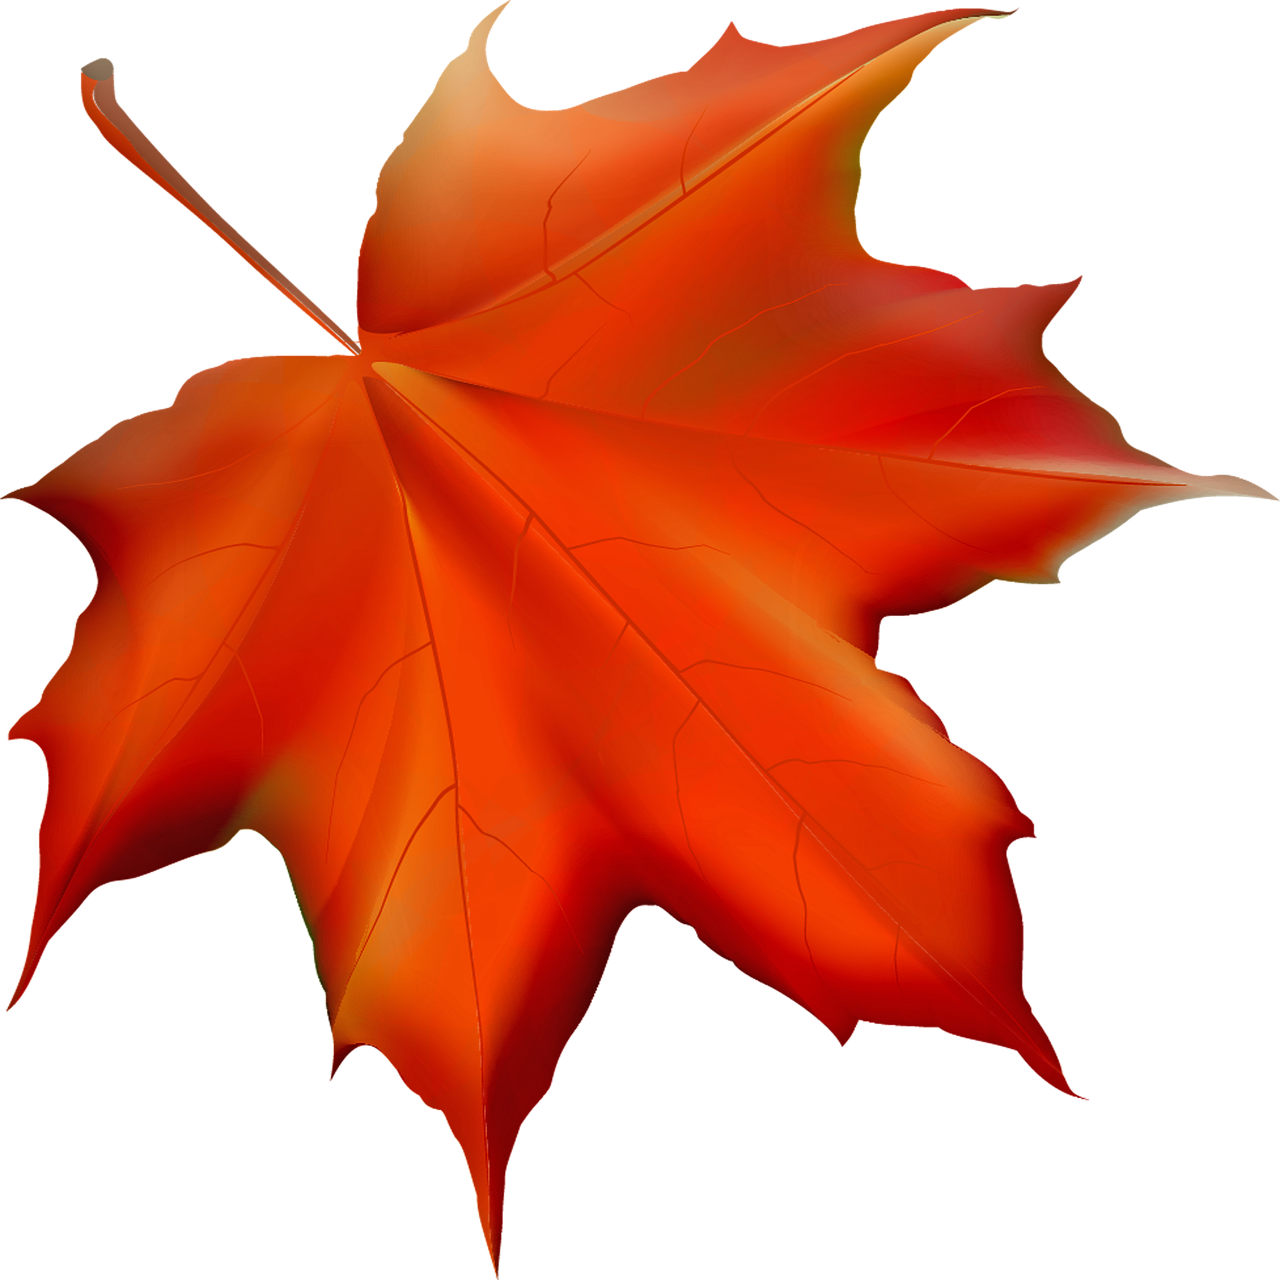 Fall Leaf Autumn Leaves - Free image on Pixabay